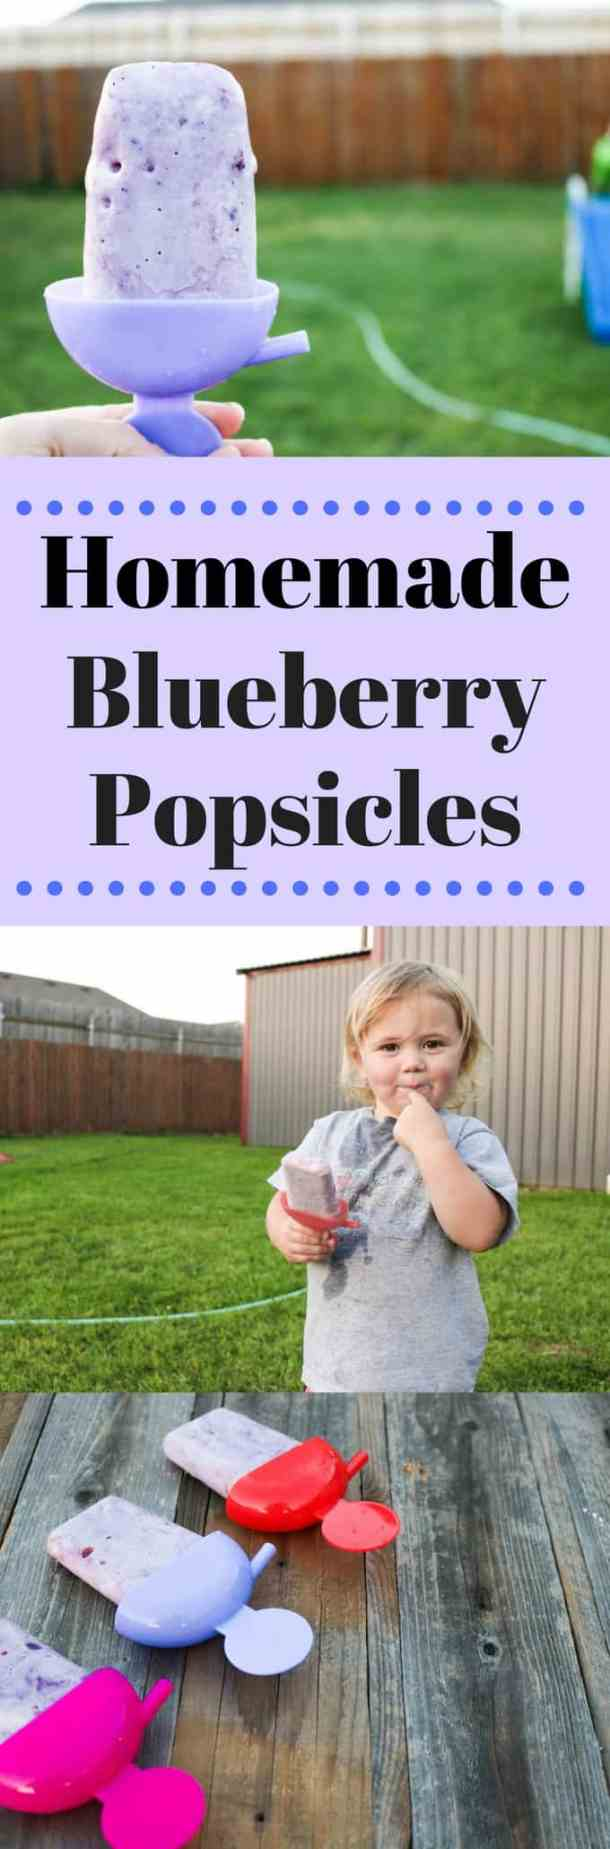 Healthy Homemade Blueberry Popsicles